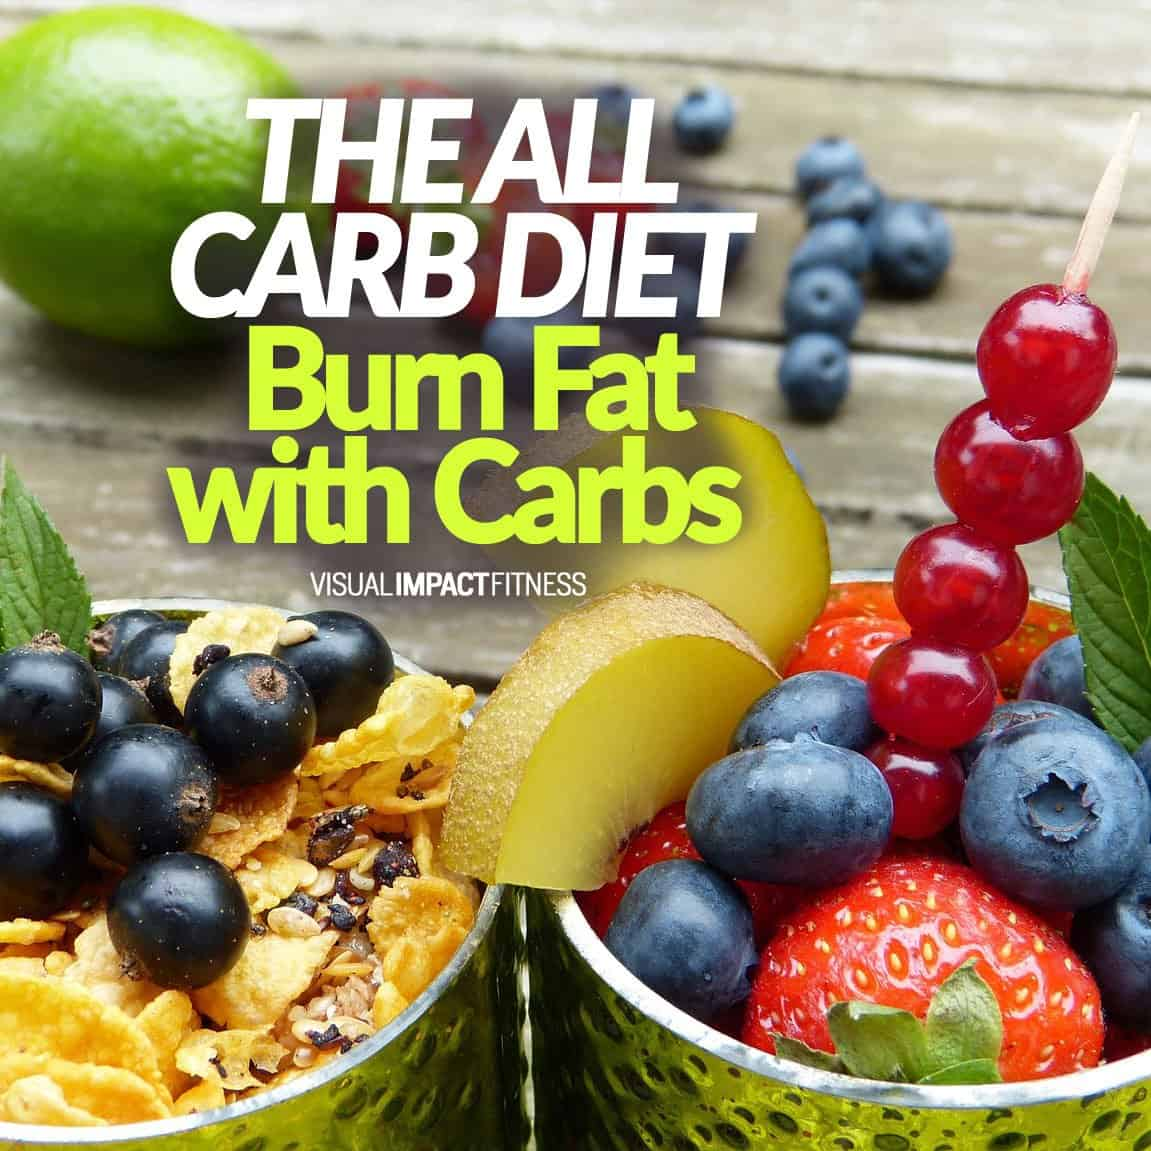 THE ALL CARB DIET (Burn Fat with Carbs)